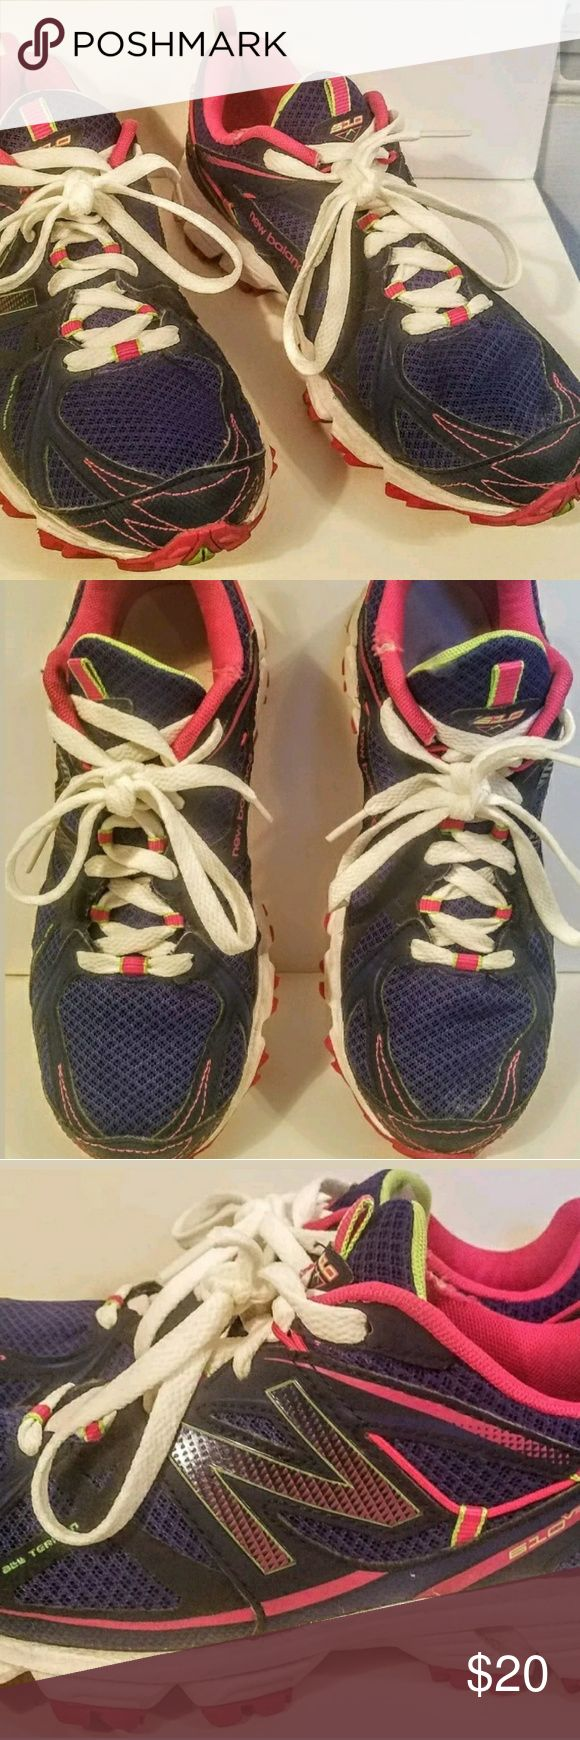 NEW BALANCE Hiking,Trail, All Terrain Sneakers 8.5 NEW BALANCE  Style- WT610BP2 610 V2  Hiking,Trail, All Terrain Sneakers  Women's US 8.5B   In great condition. Only sign of pre-owned use is on the hot pink trim. There is a pull New Balance Shoes Sneakers